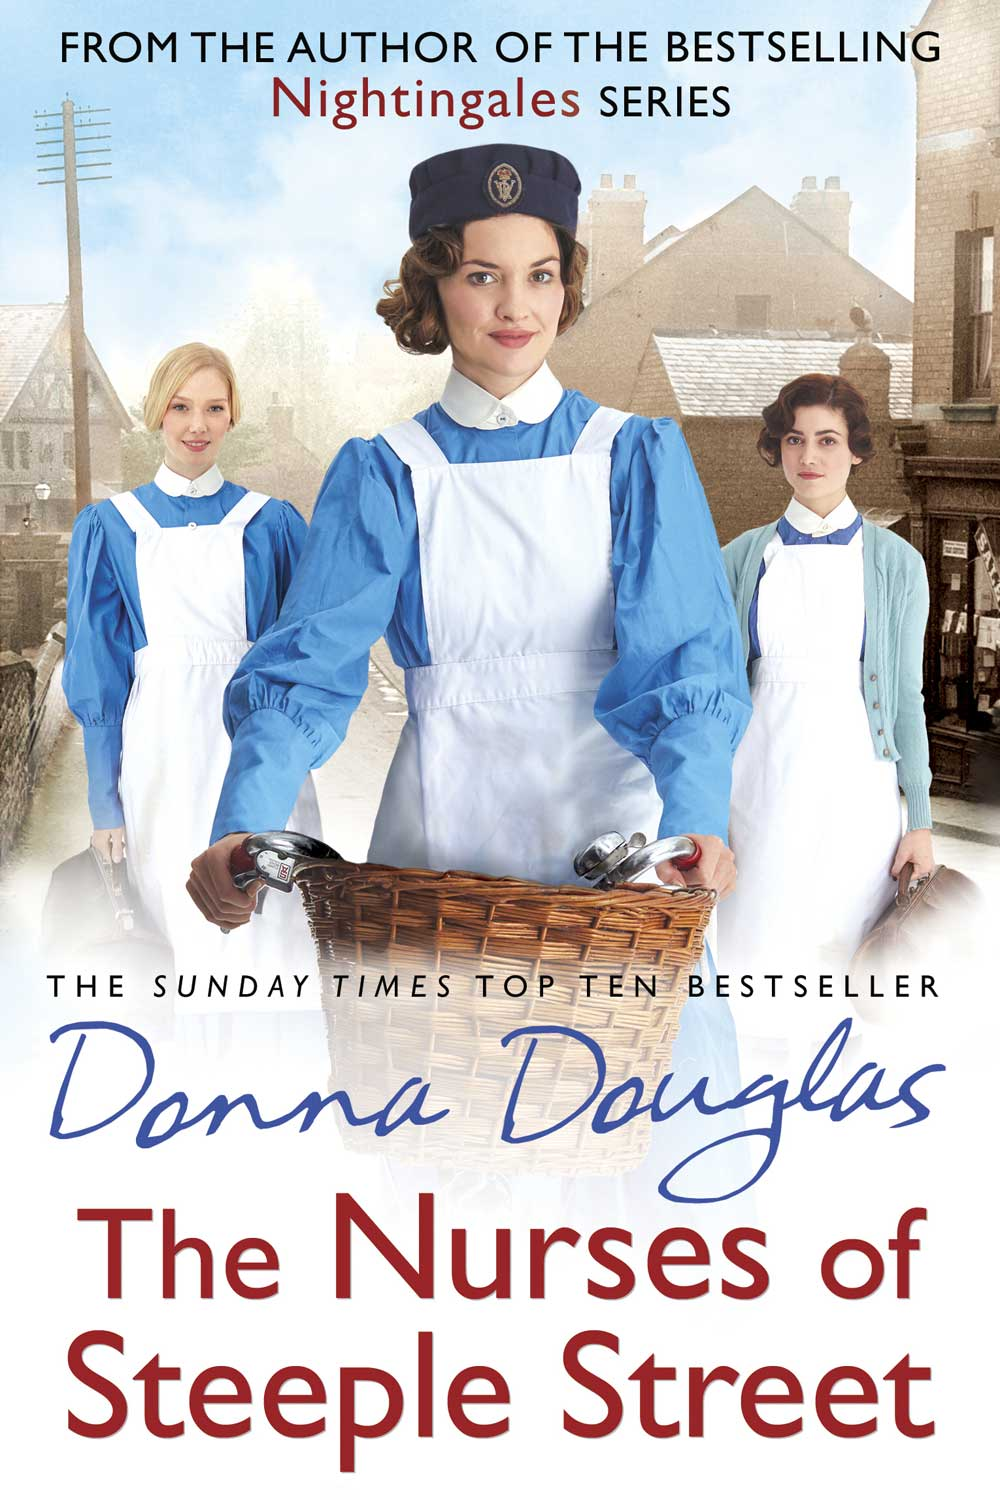 The Nurses of Steeple Street